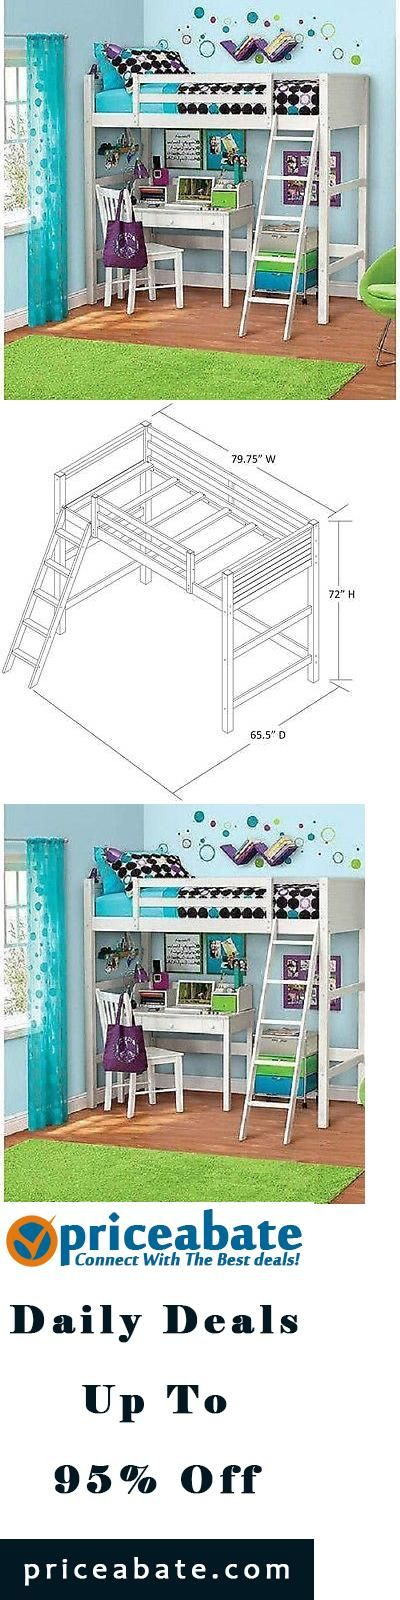 Loft bed | kids loft beds | Kids Twin Size Loft Bed Over Desk White Bedroom Furniture Wood Bunk Teen Sturdy - Buy This Item #Priceabate Now For Only: $297.98